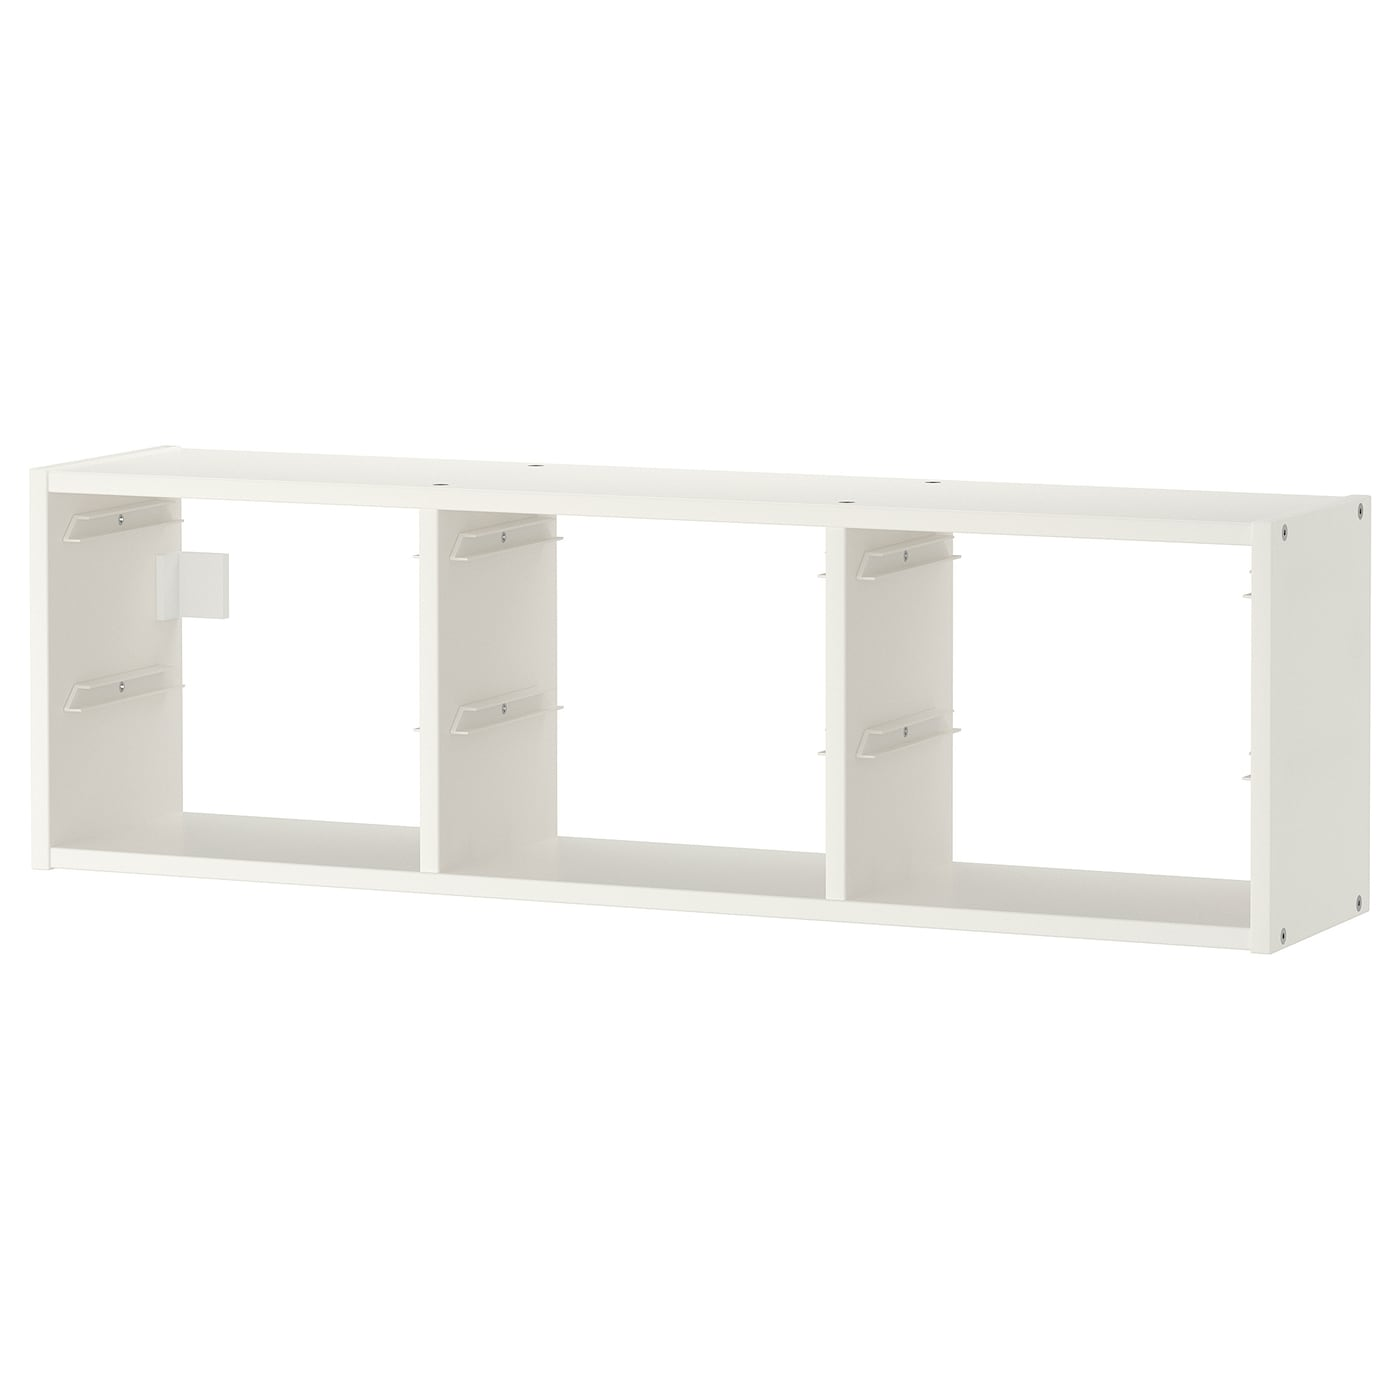 IKEA TROFAST wall storage A playful and sturdy storage series for storing and organising toys.